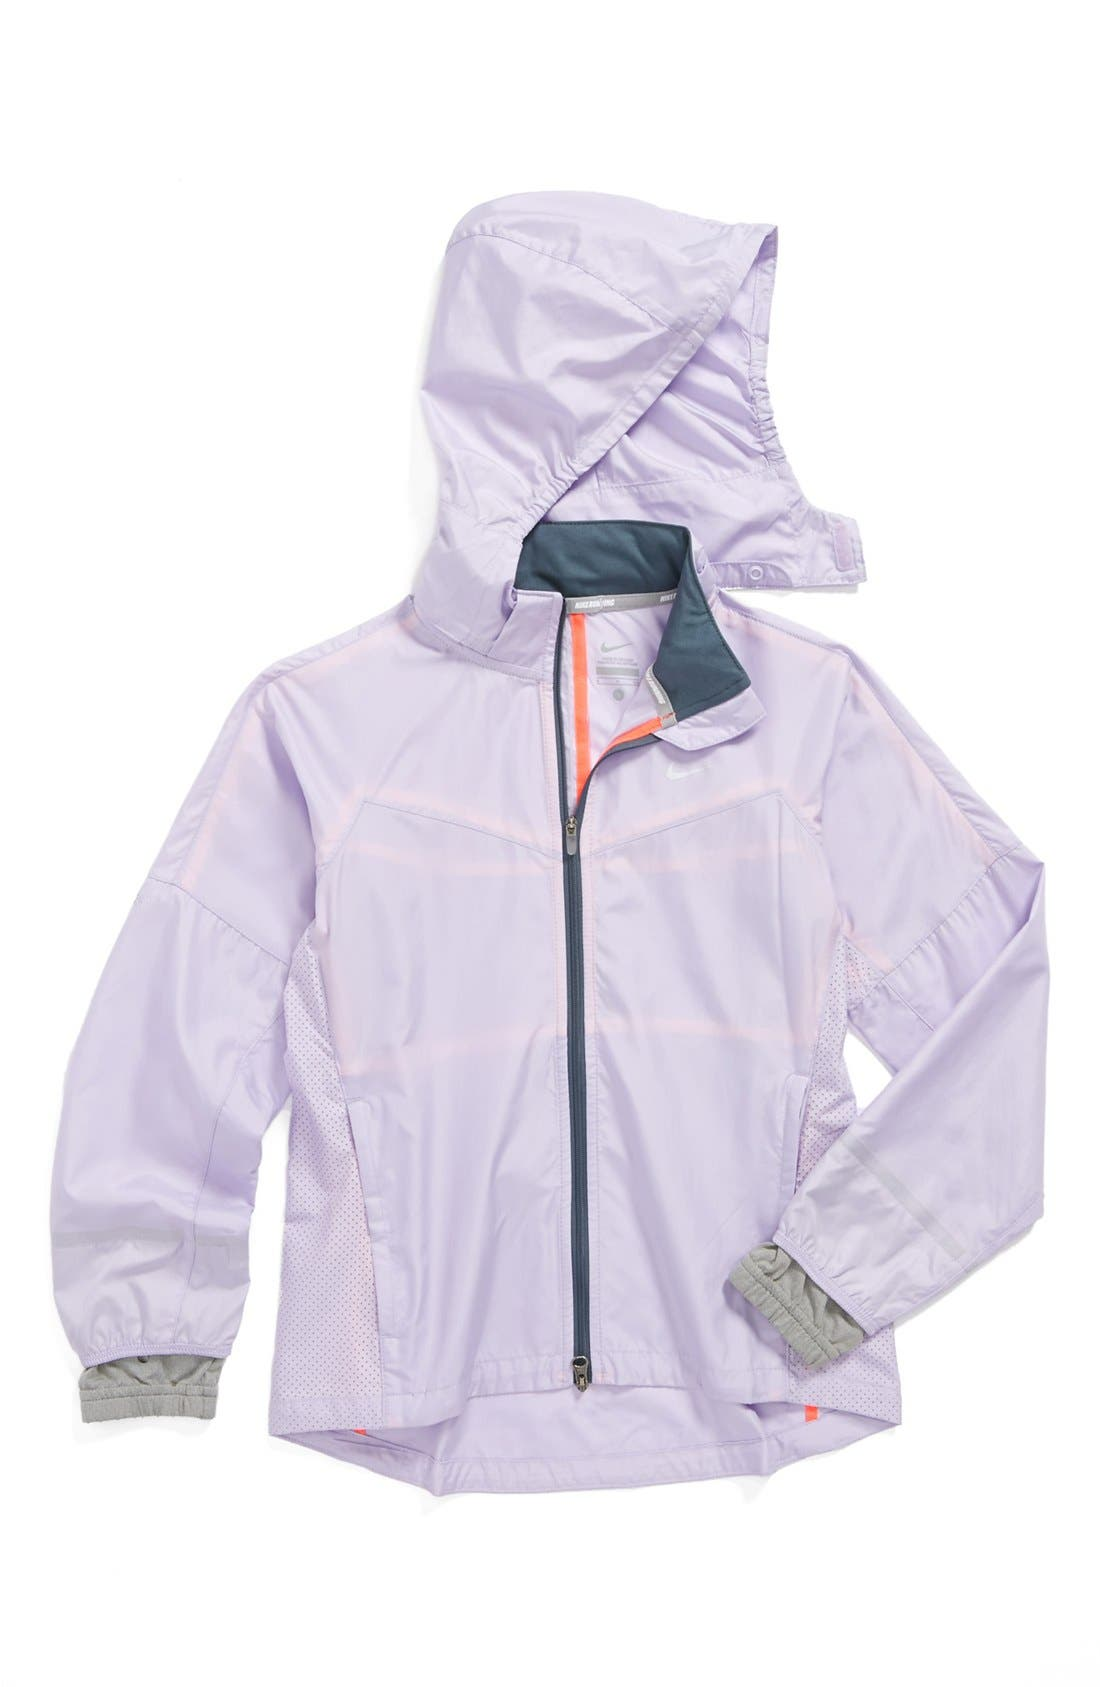 Main Image - Nike 'Vapor' Running Jacket (Little Girls & Big Girls)